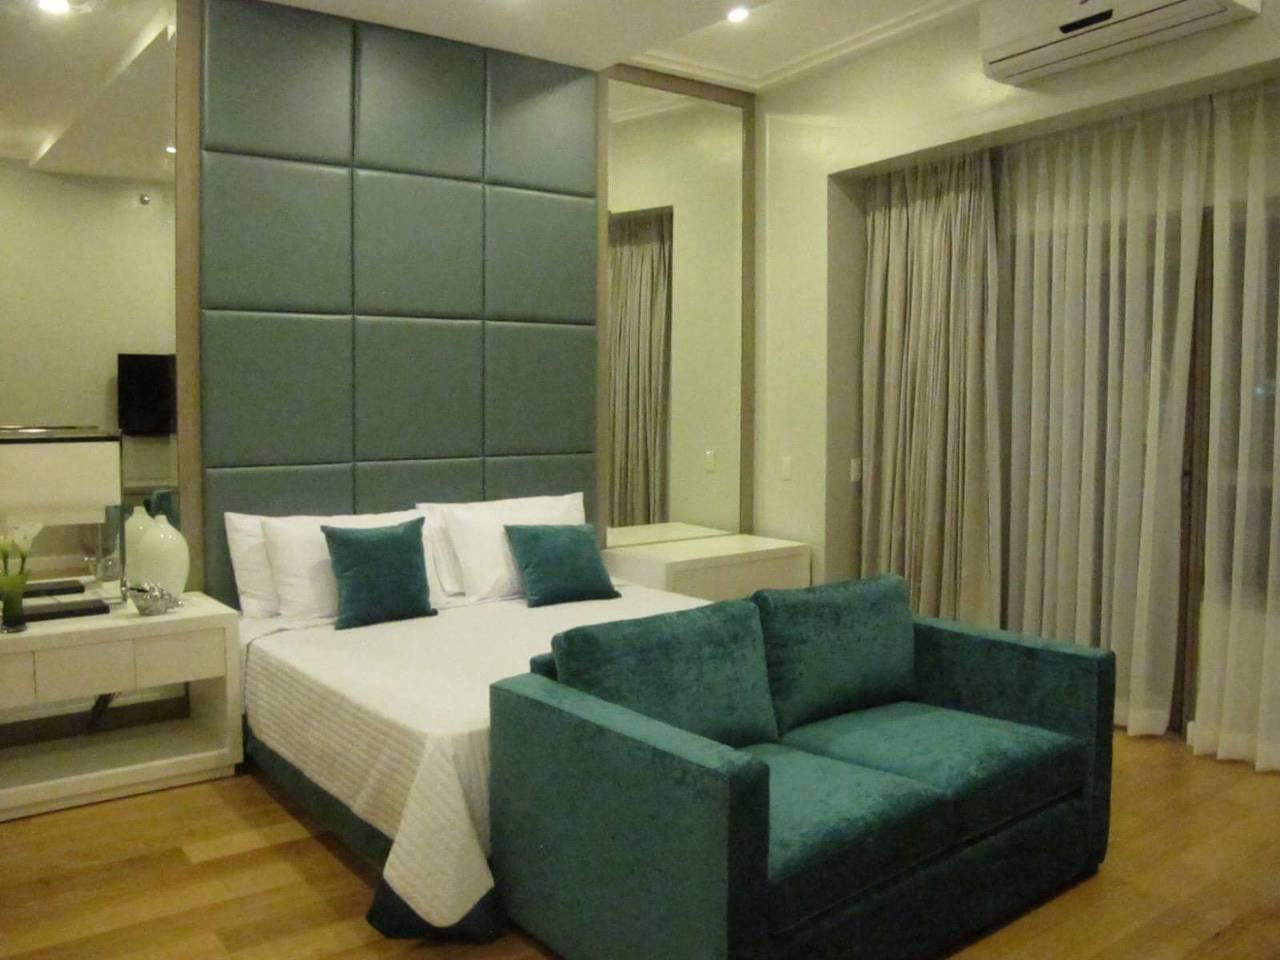 2BR For Rent San Lorenzo Tower Bedroom 1